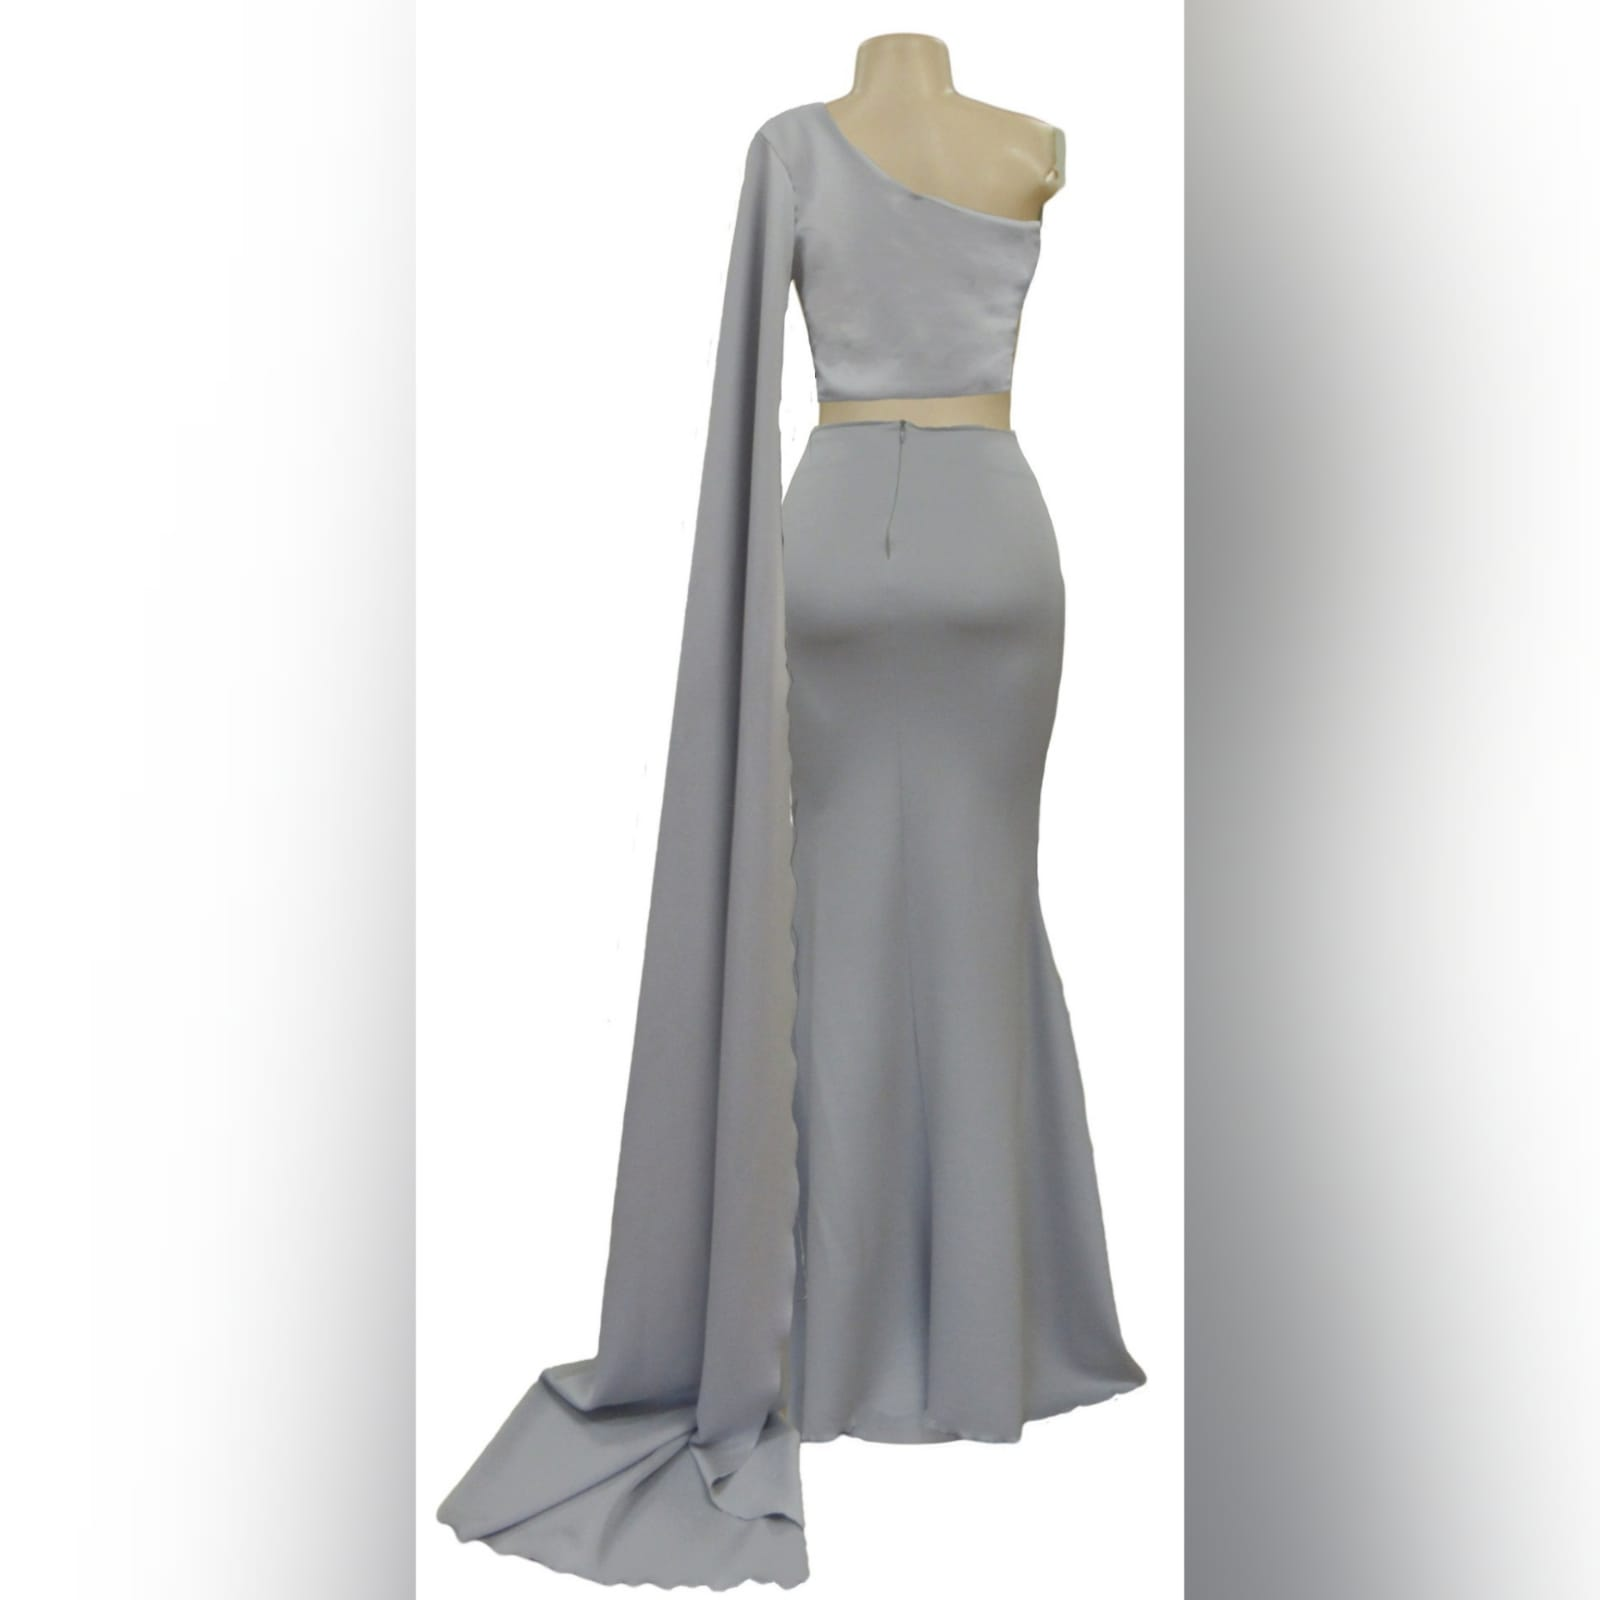 2 piece light grey prom dress 5 2 piece light grey prom dress, crop top with a single shoulder and a long wide sleeve creating a train. With a fitted long skirt, with a high slit.